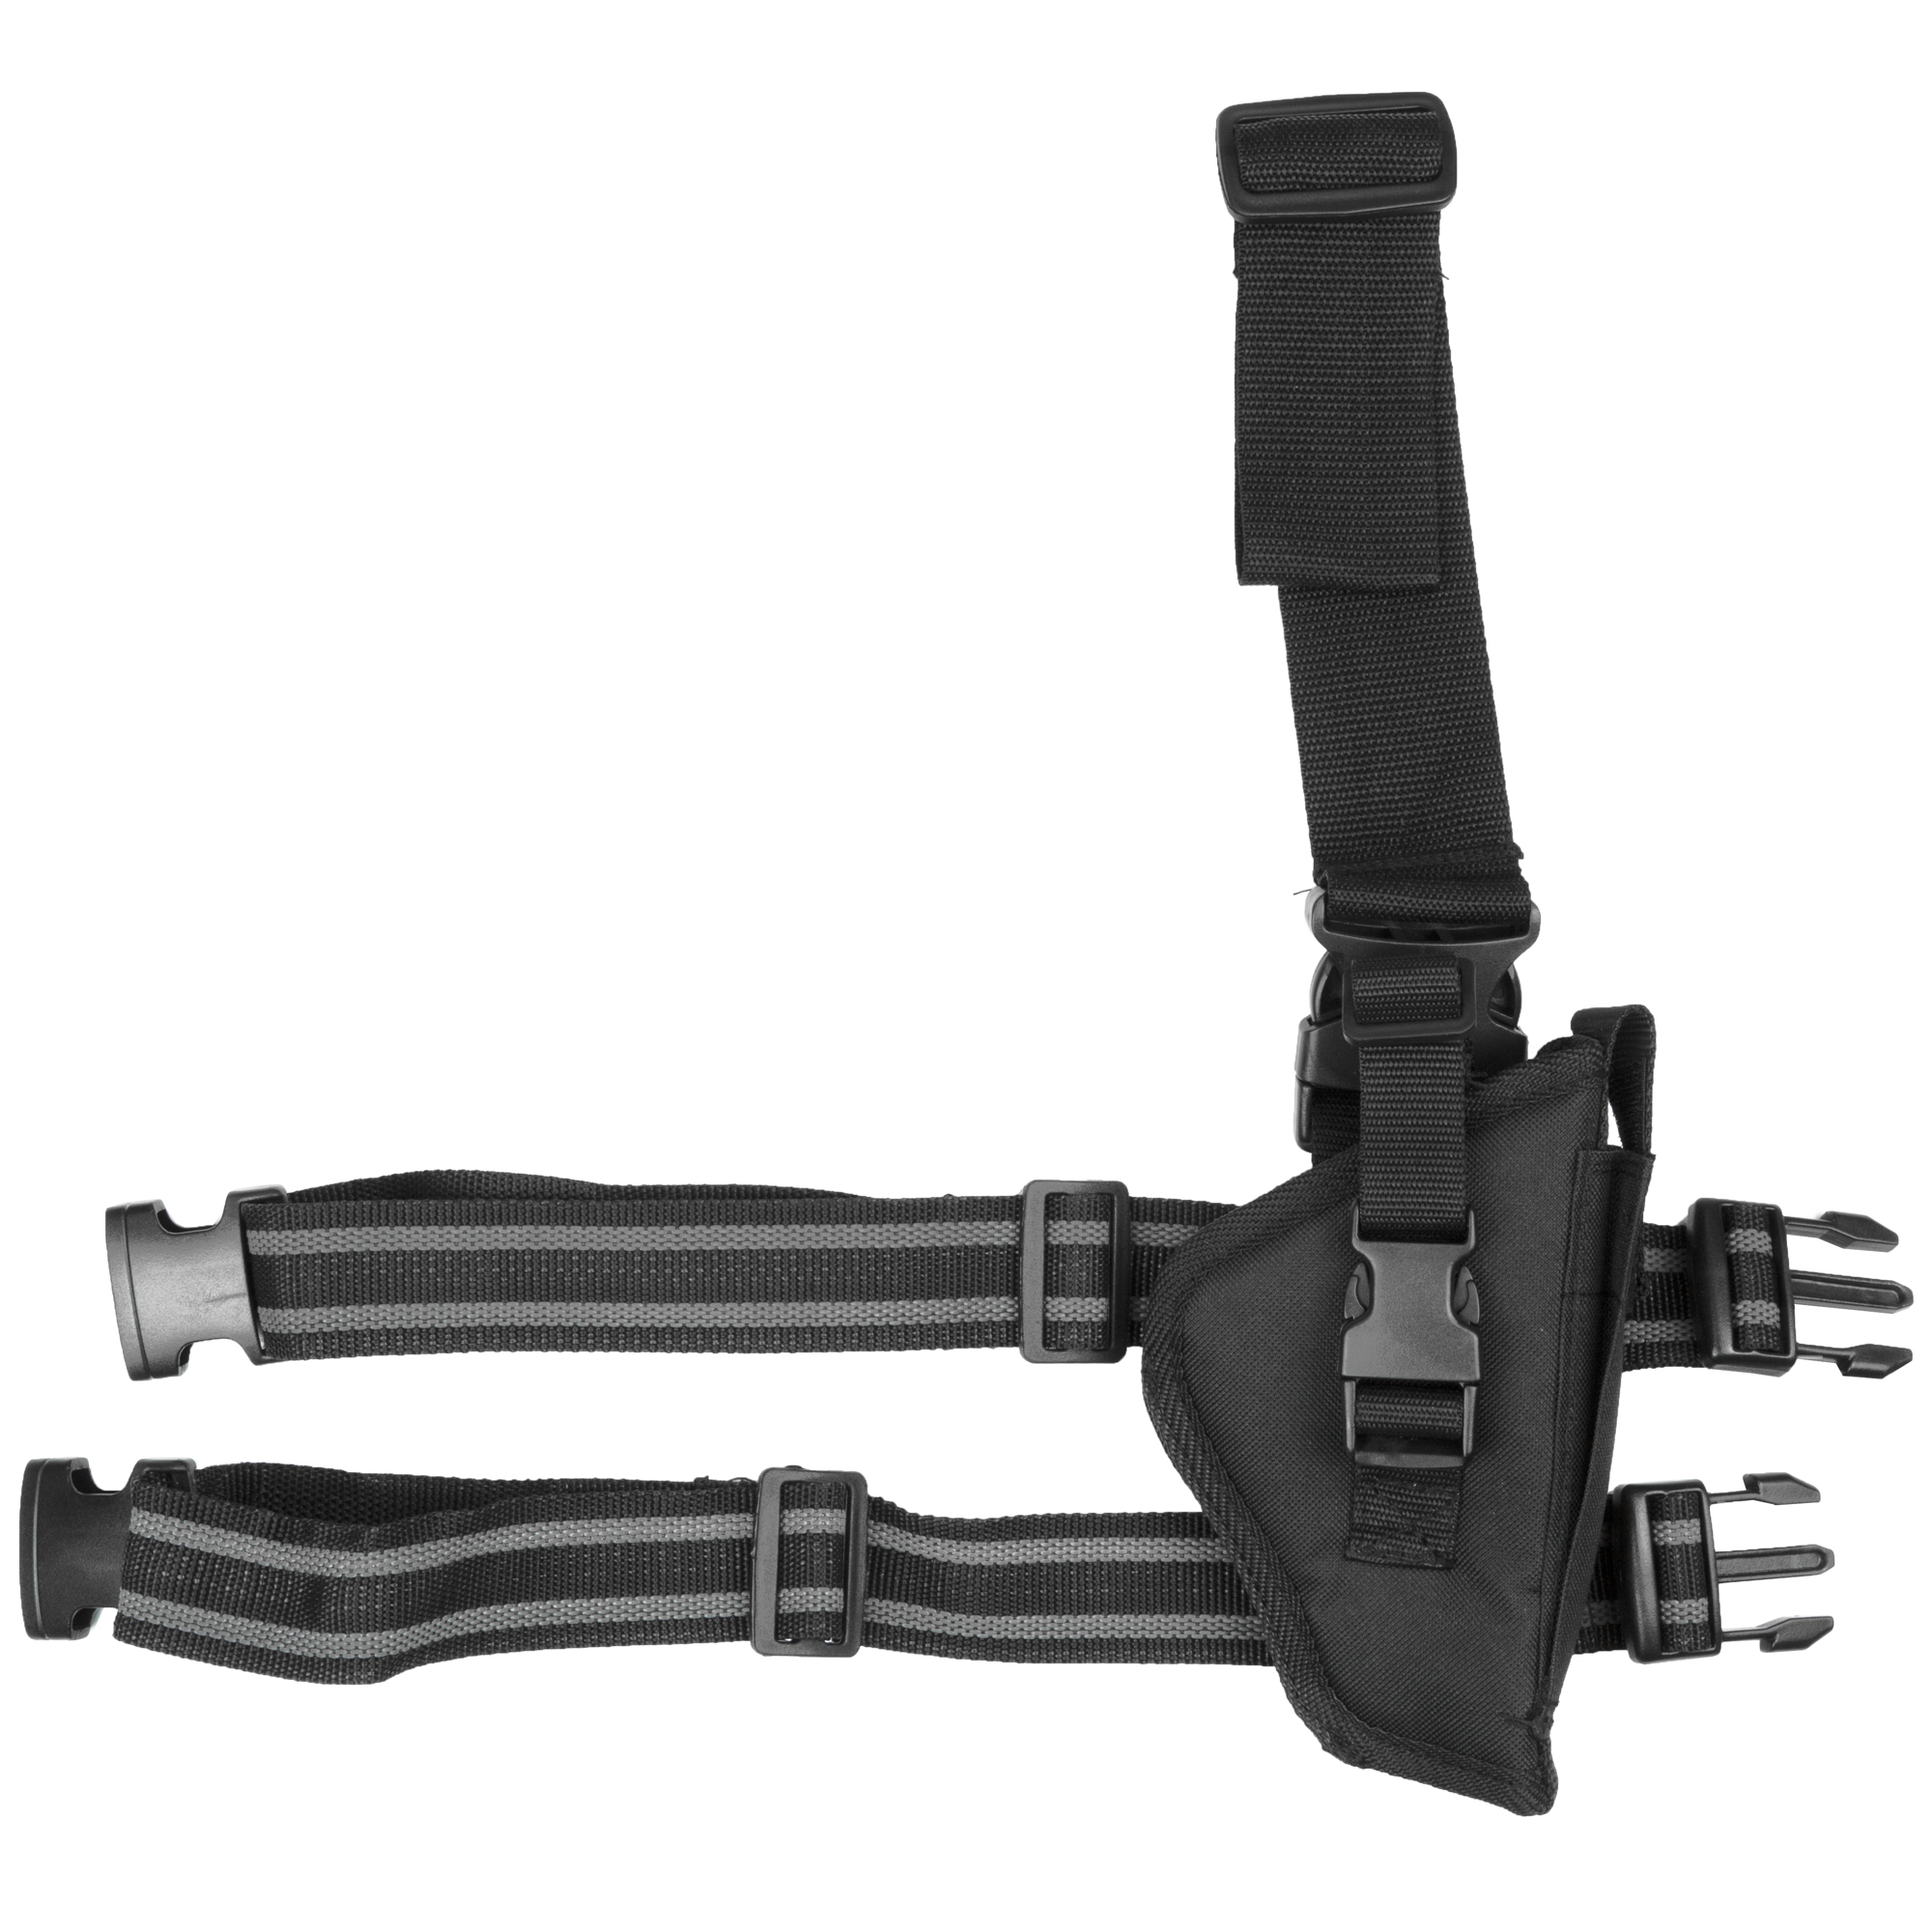 """Bulldog Cases offers one of the best leg holsters on the market. The double leg straps feature a non-slipping lining that ensures the holster stays in place"""" quick release buckles allow for quick removal and the straps have plastic slider buckles making them fully adjustable. The adjustable belt loop adds another security measure to the holster which features a thumb break and extra magazine pouch. This holster will fit medium and large framed 2""""-4"""" barrel semi-autos."""